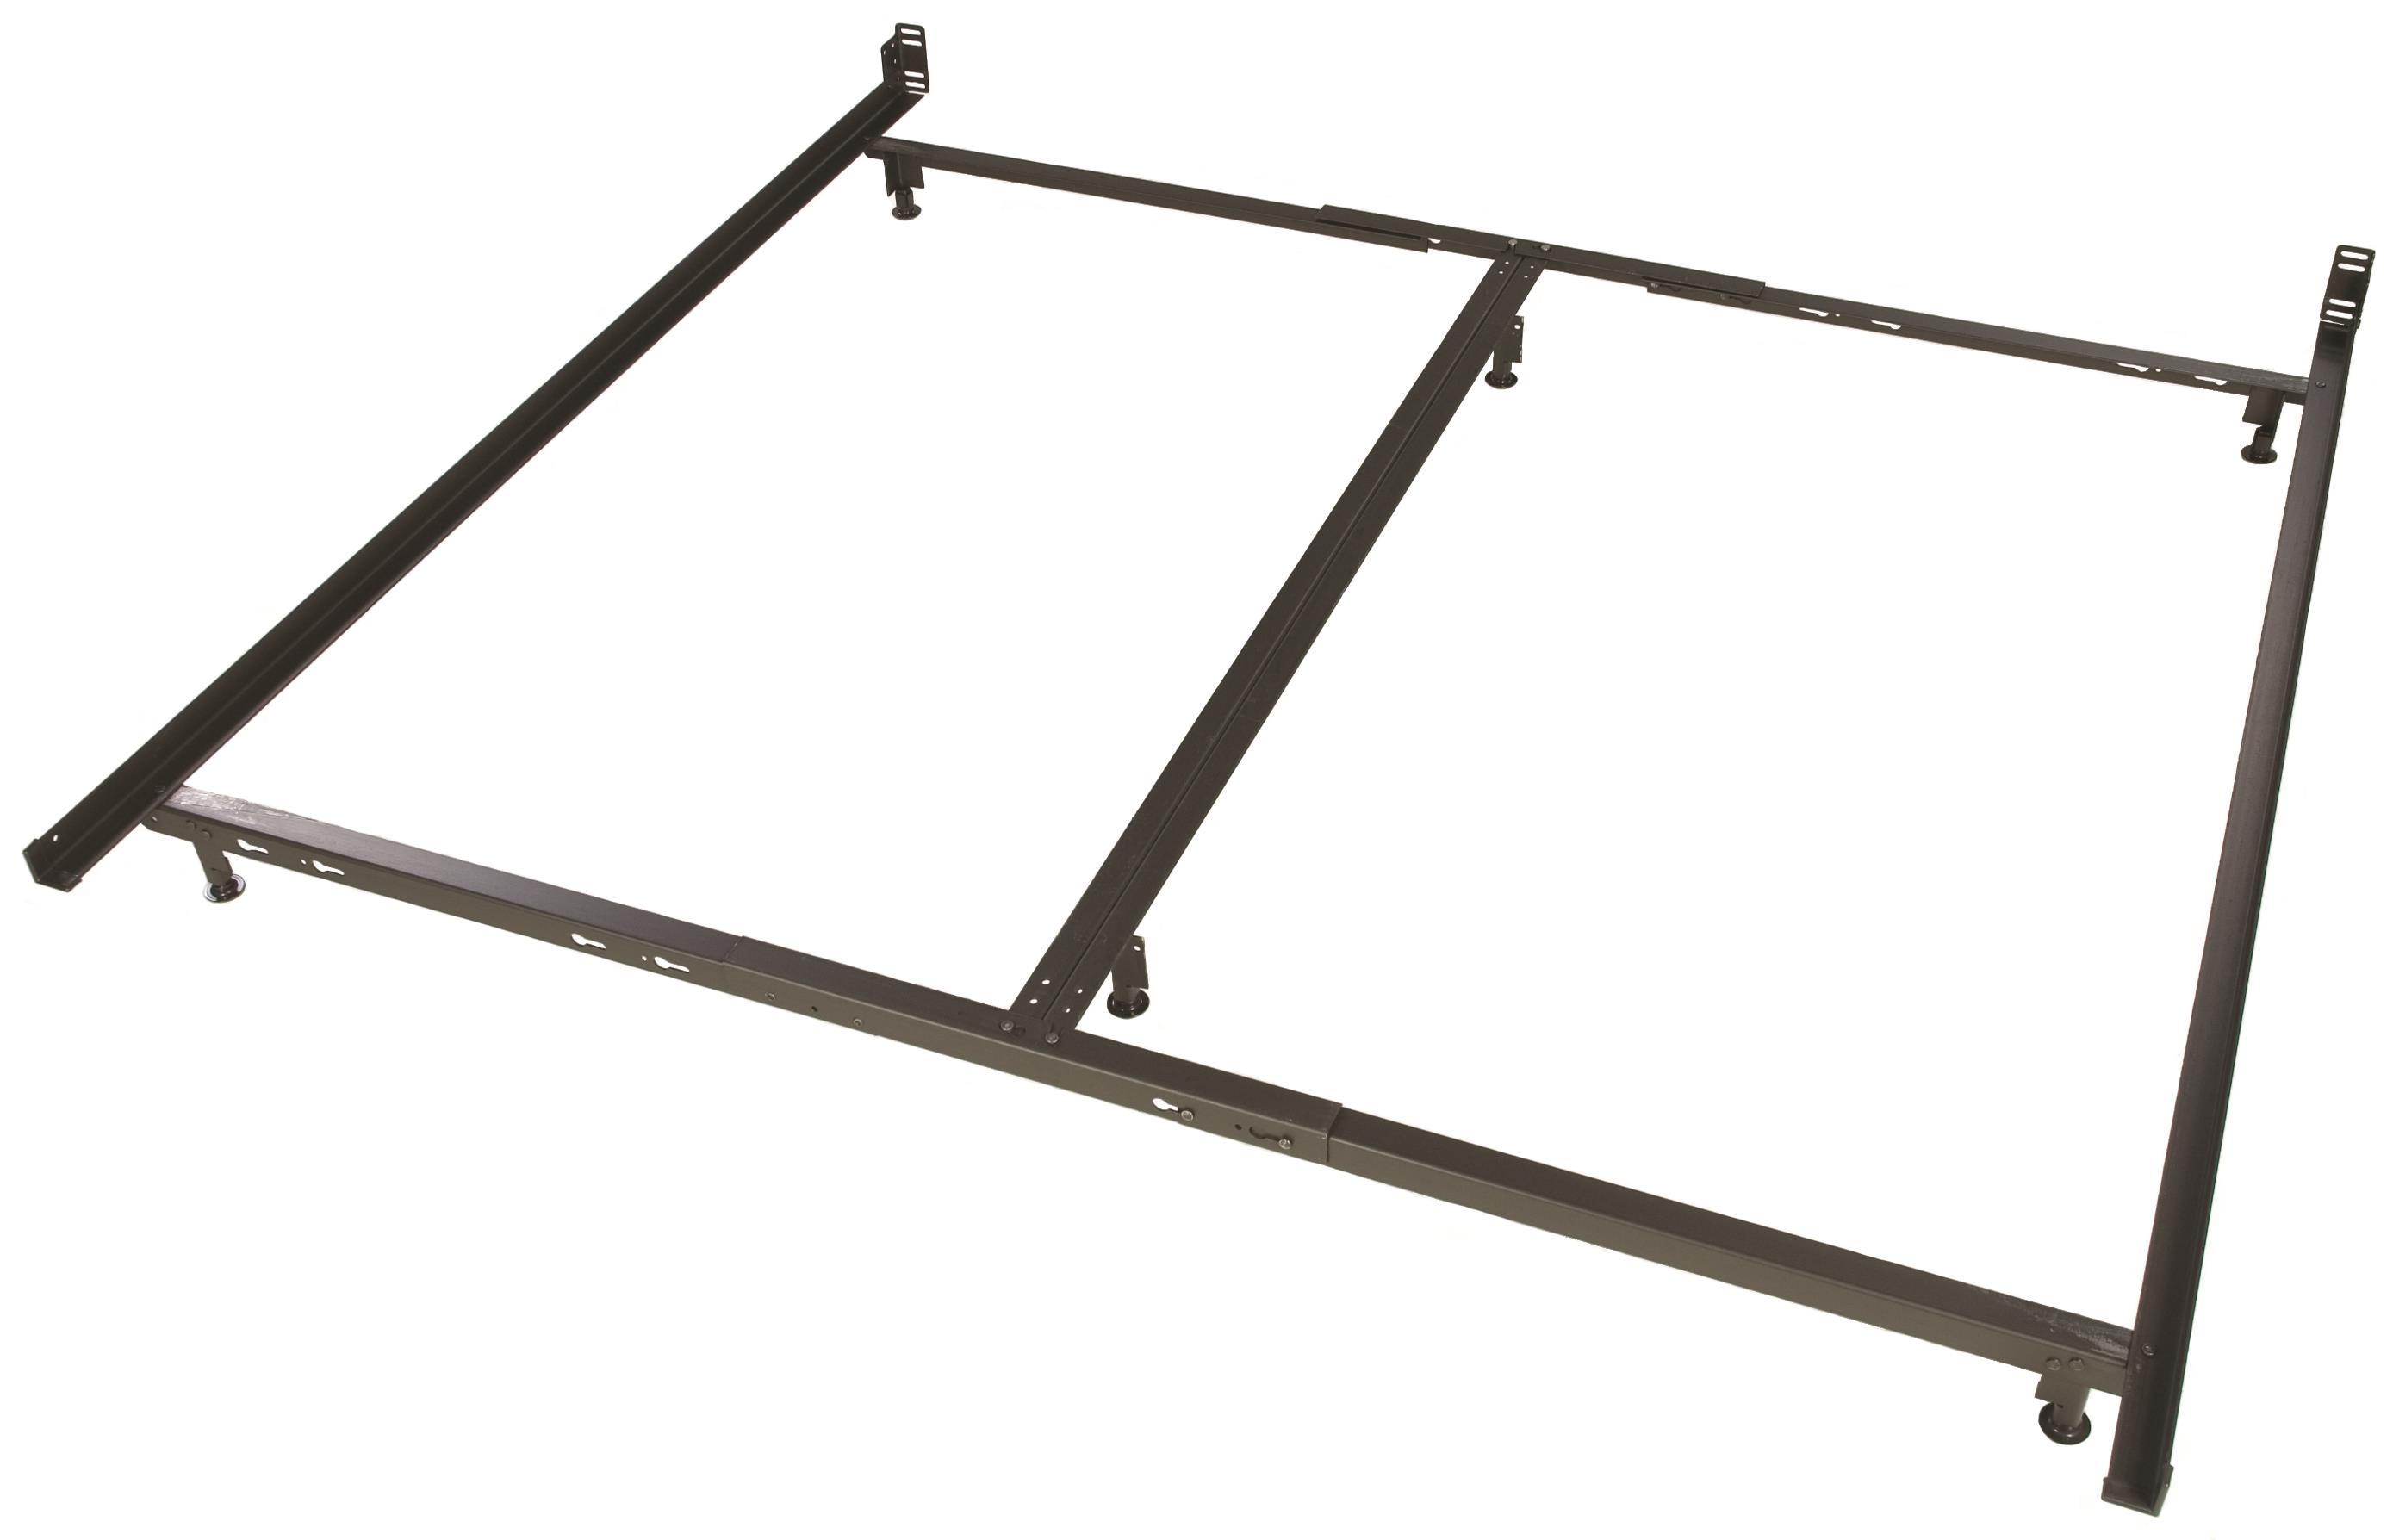 Twin Bed Frame Low Profile Glideaway Low Profile Bed Frames Lb44 6 Leg King Low